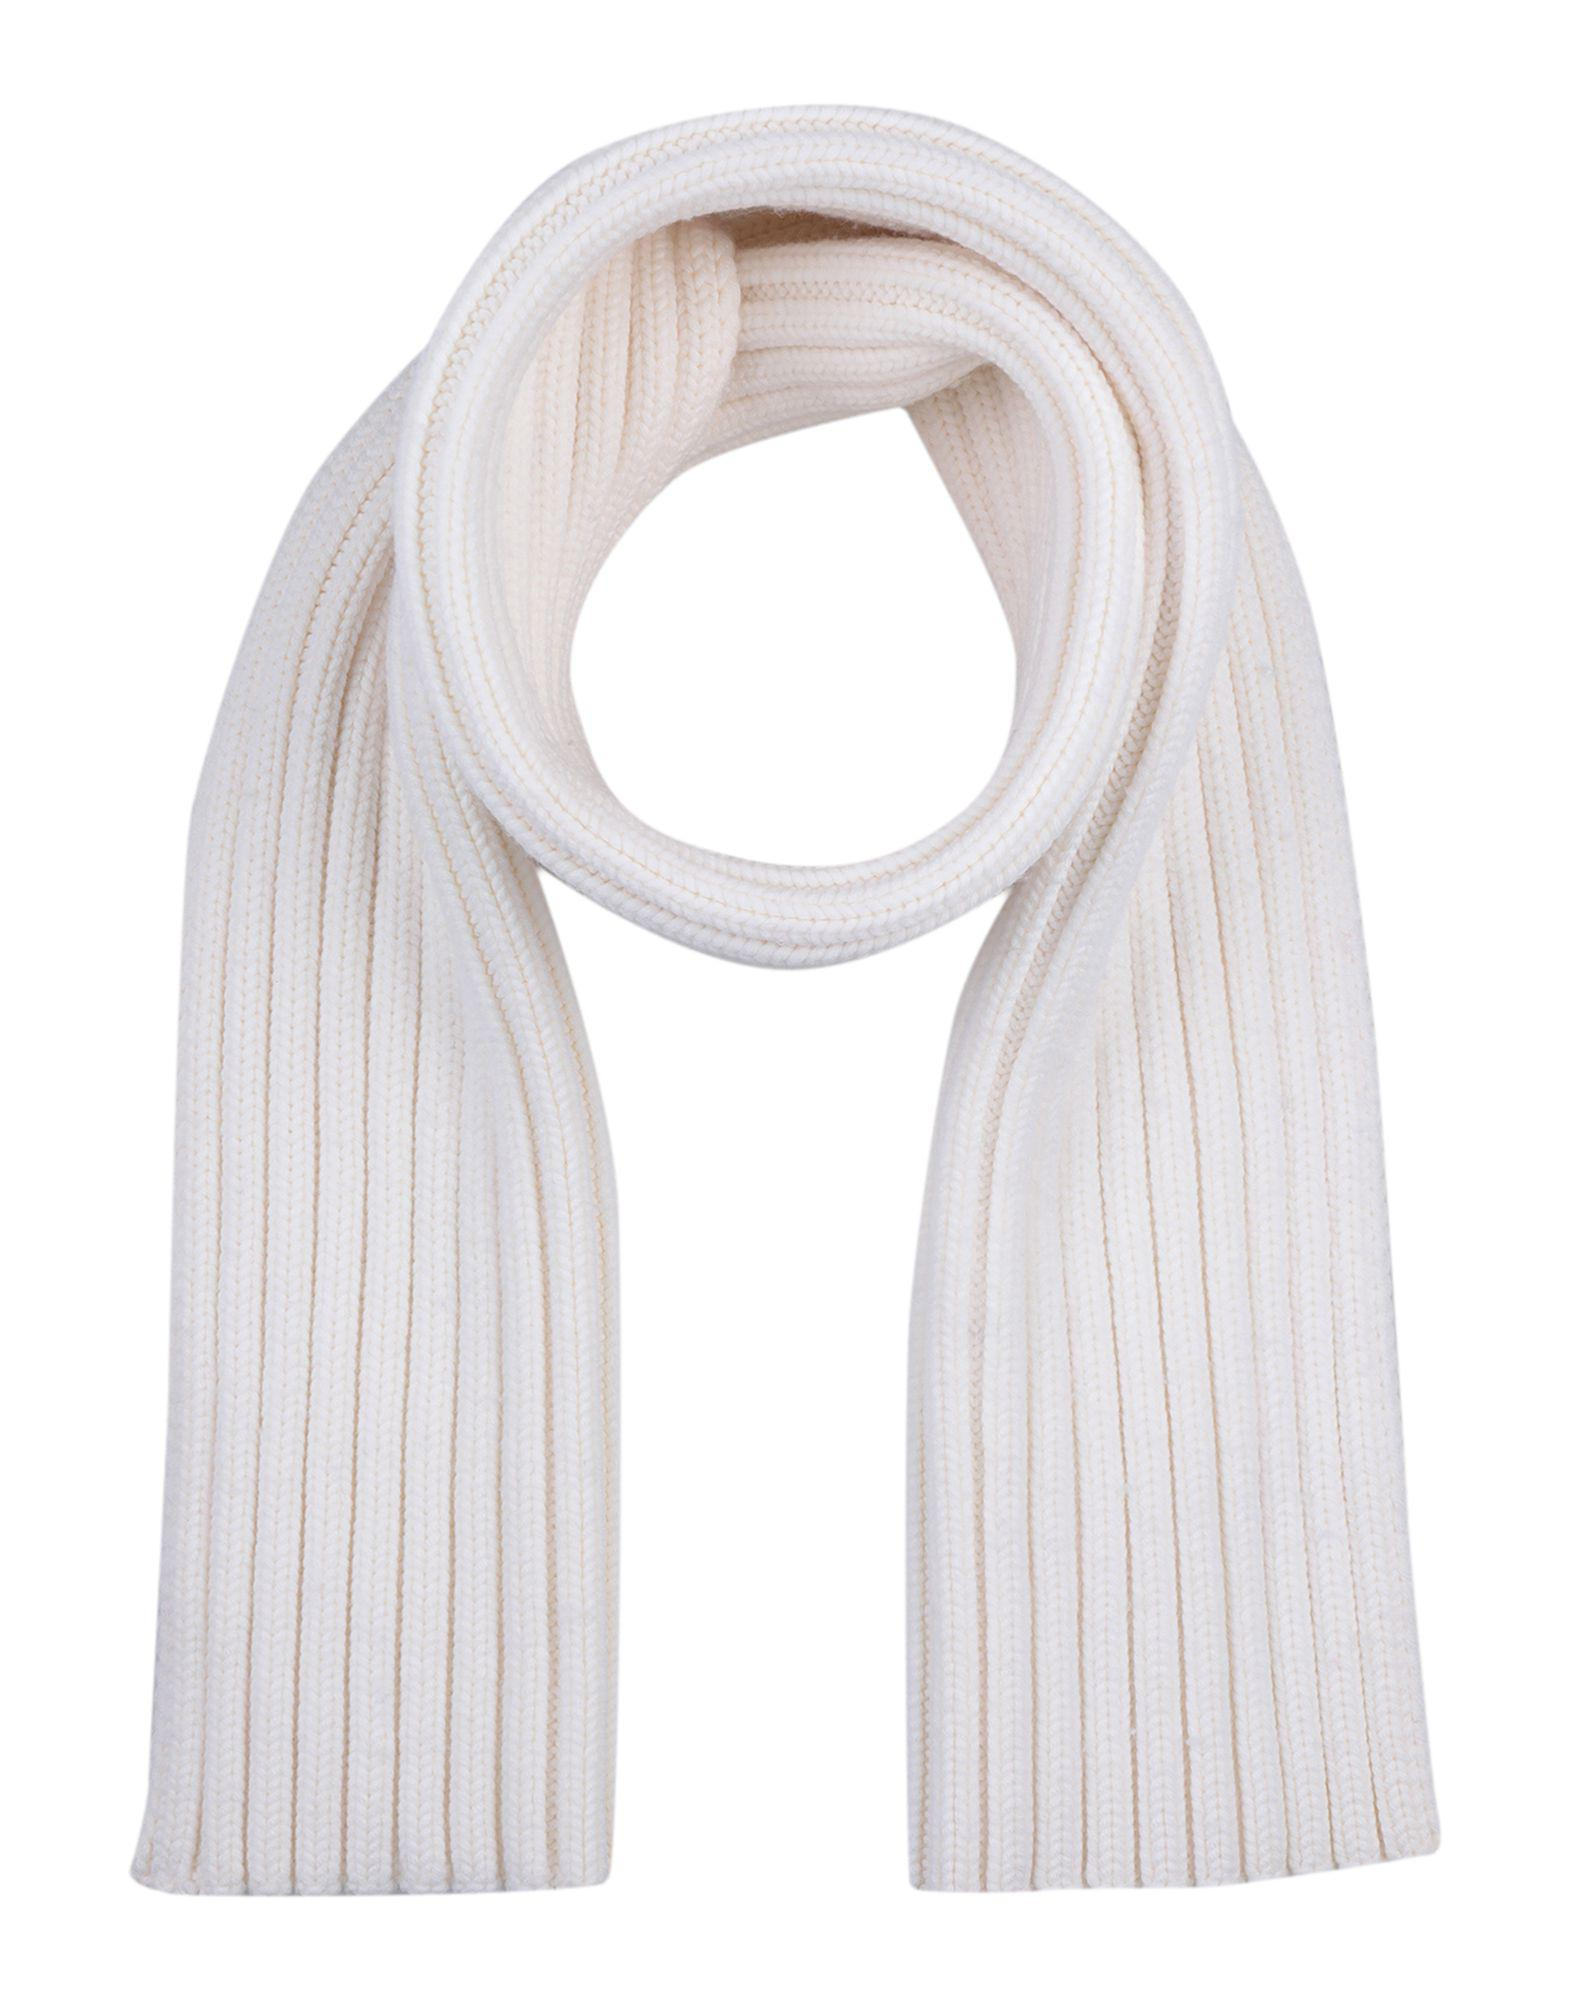 0377713d94a5 Lyst - MM6 by Maison Martin Margiela Oblong Scarf in White